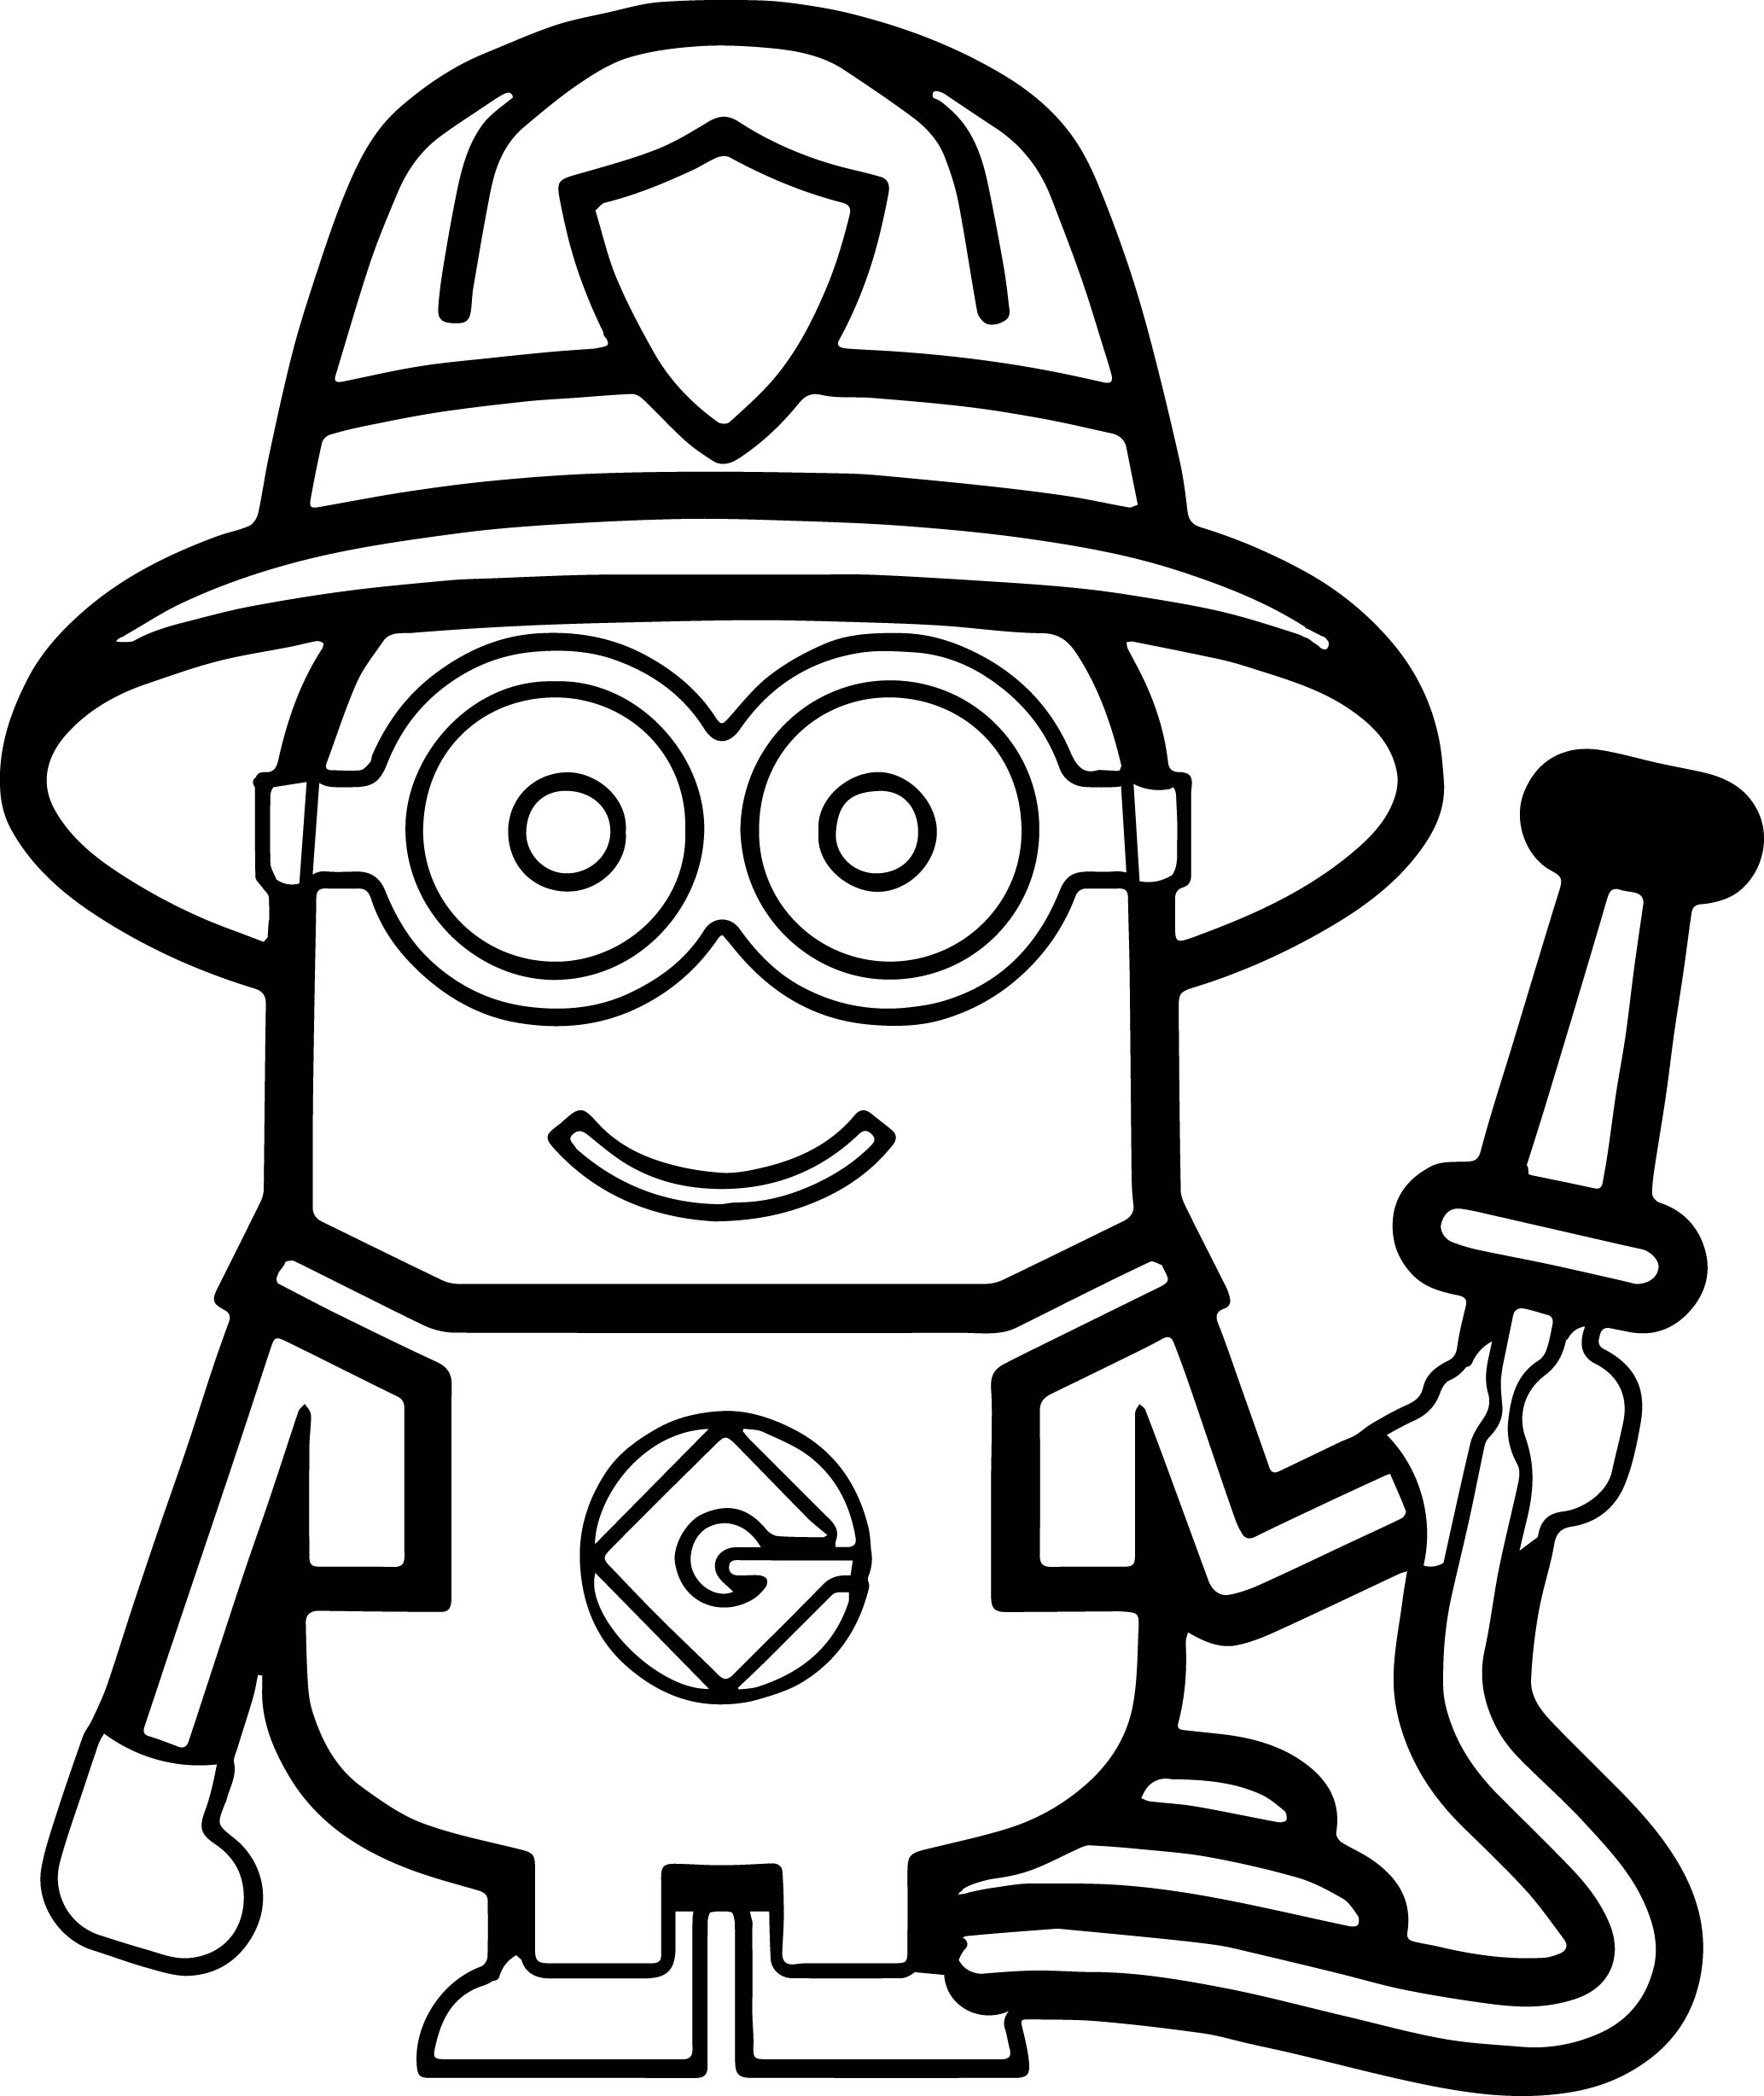 2067x2456 Fresh Firefighter Coloring Page Gallery Printable Coloring Sheet